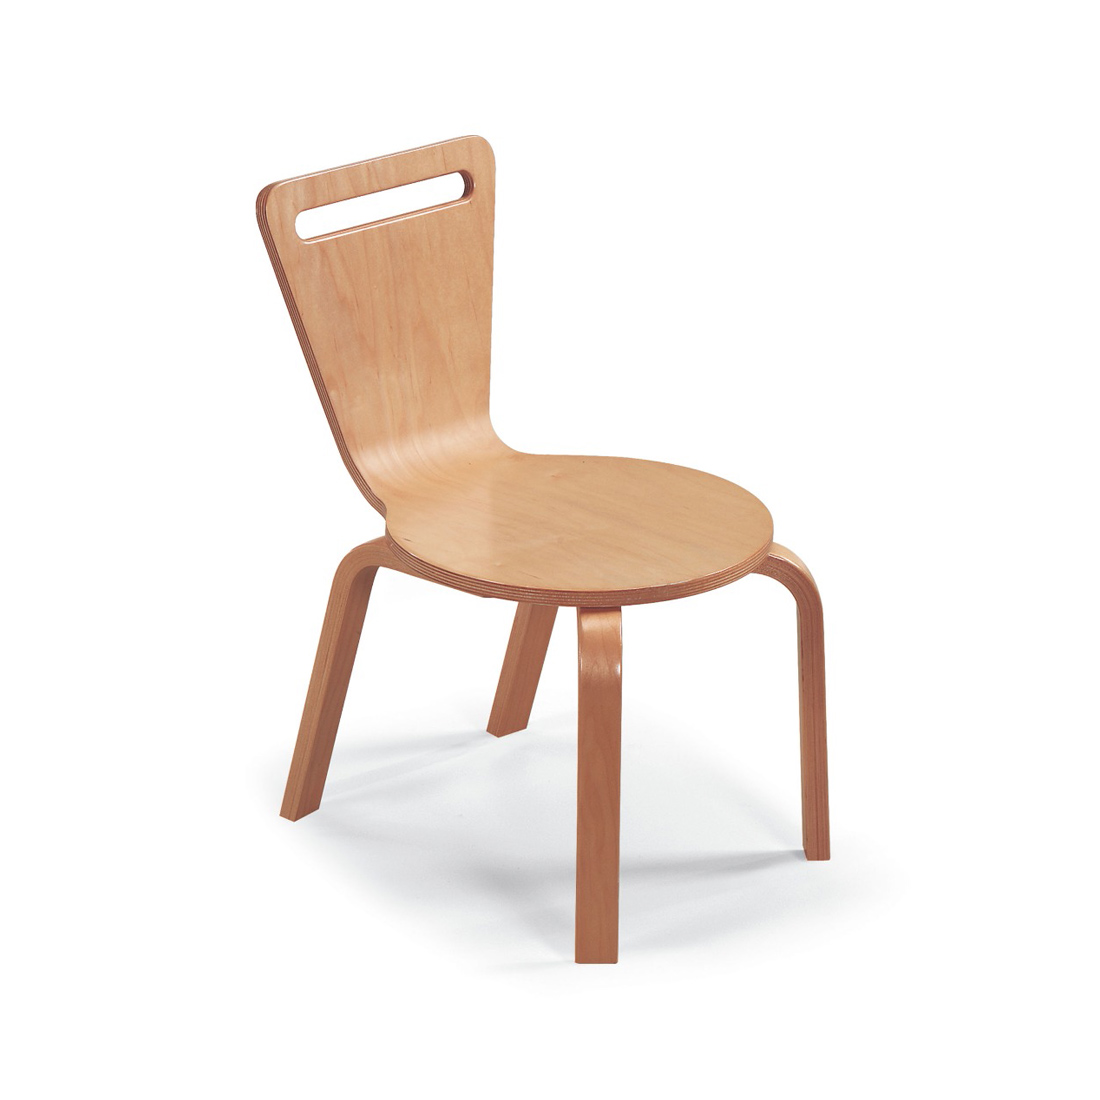 Children's Bent Wood Chair